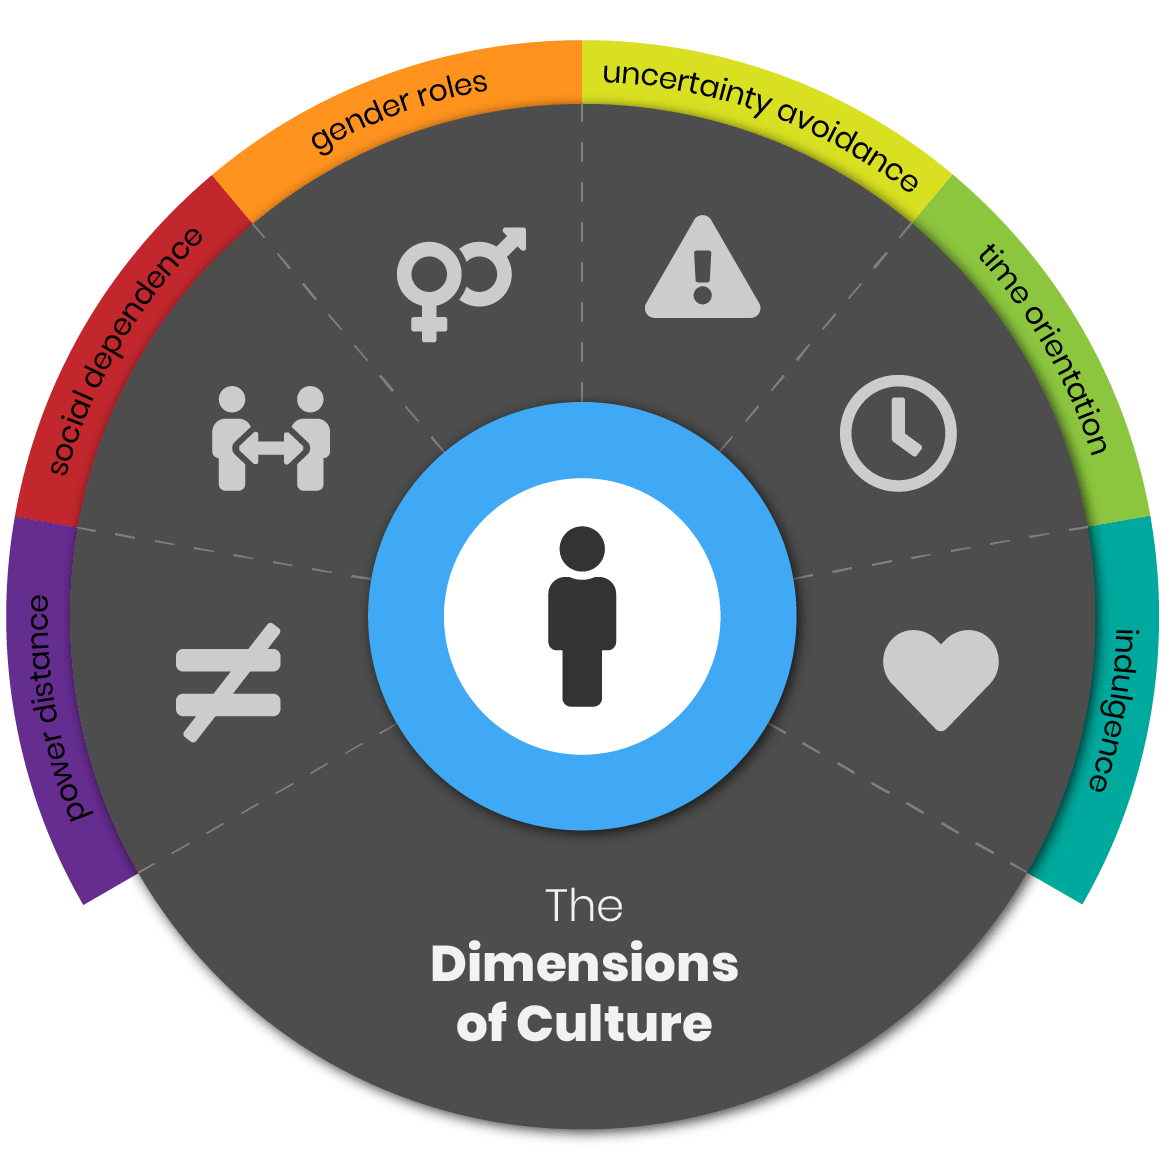 The Dimensions of Culture